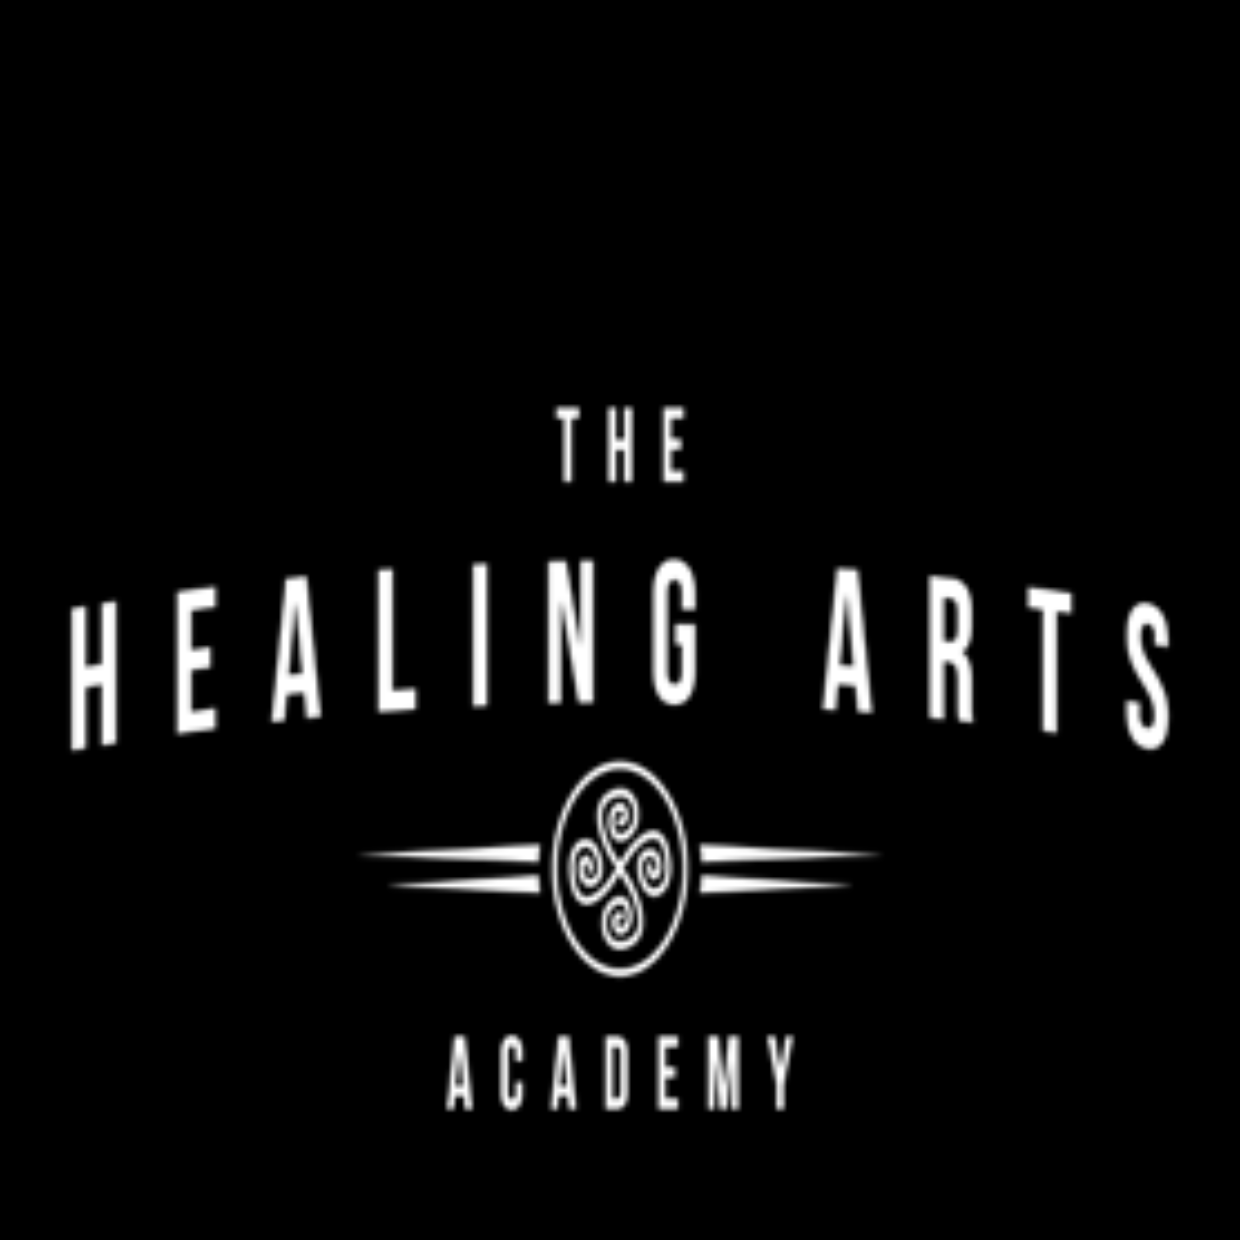 Kate And The Academy of Complementary & Alternate Healing Arts